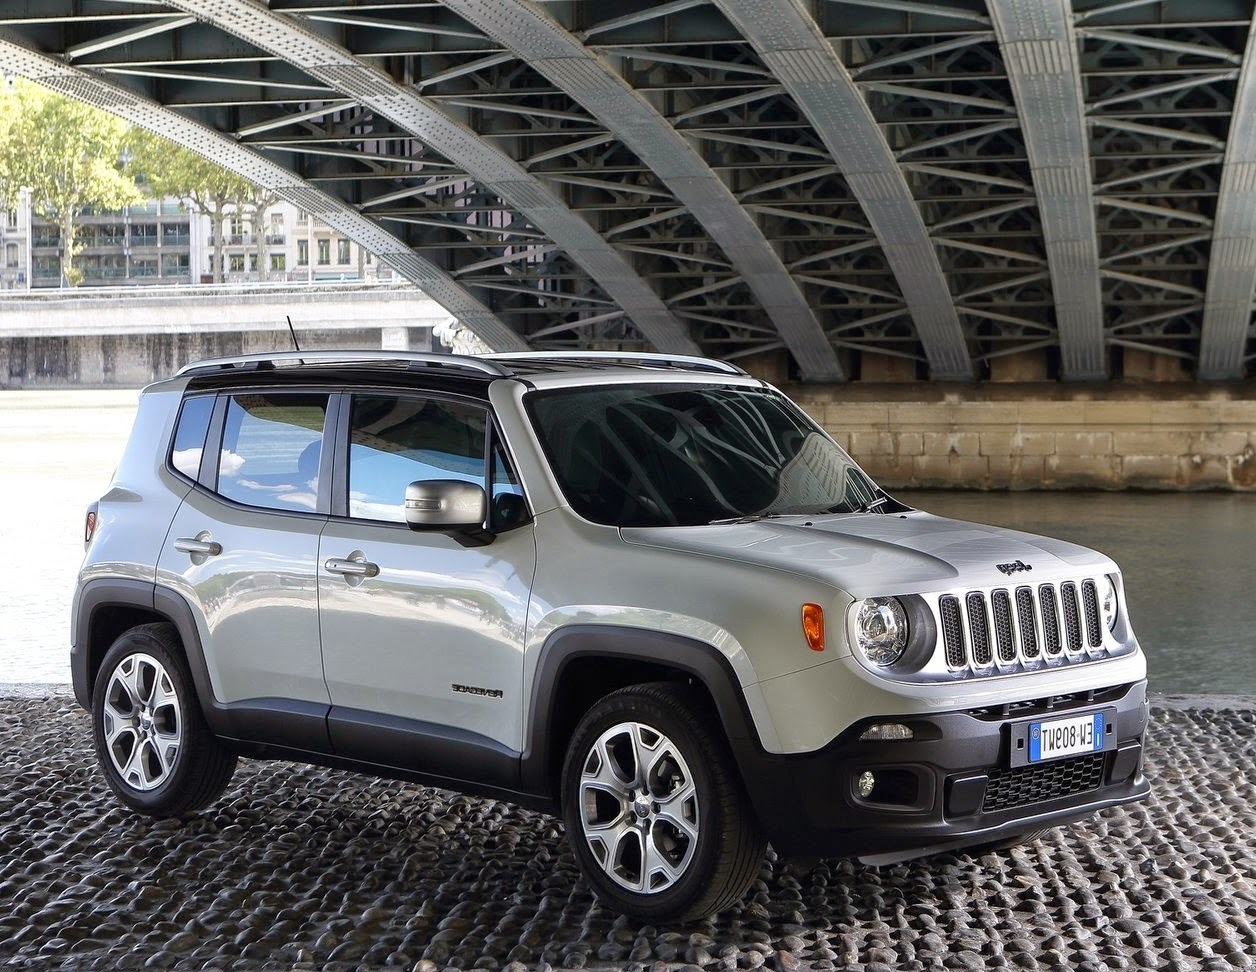 2015 jeep renegade 39 s us pricing starts at 17 995 car reviews new car pictures for 2018 2019. Black Bedroom Furniture Sets. Home Design Ideas